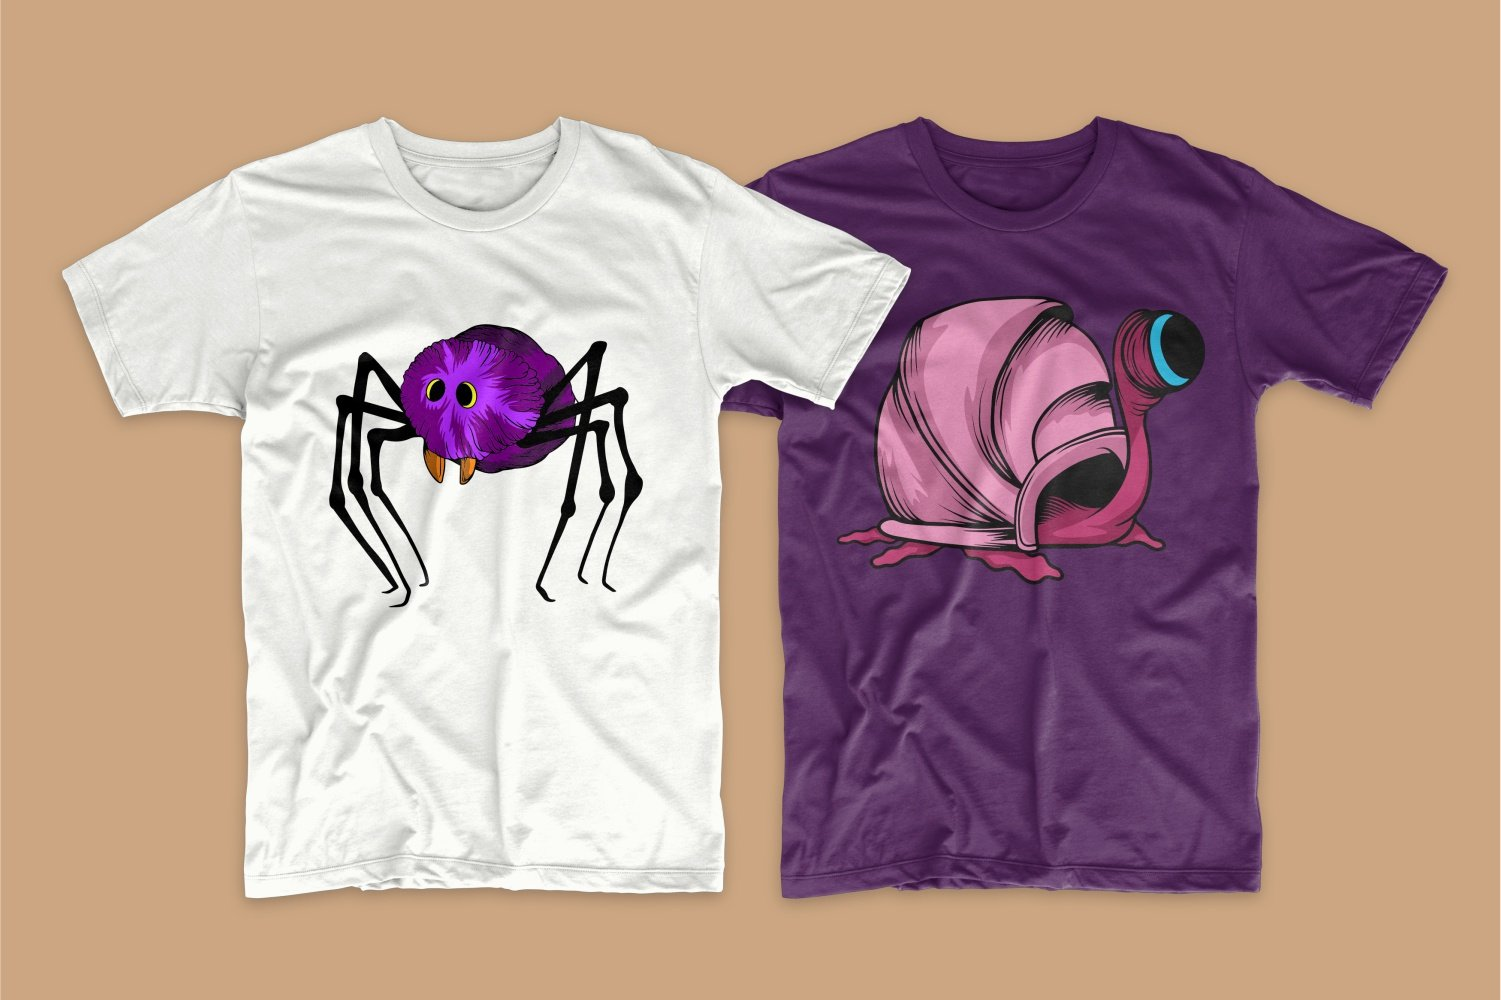 White T-shirt with a spider and a purple one with a snail.